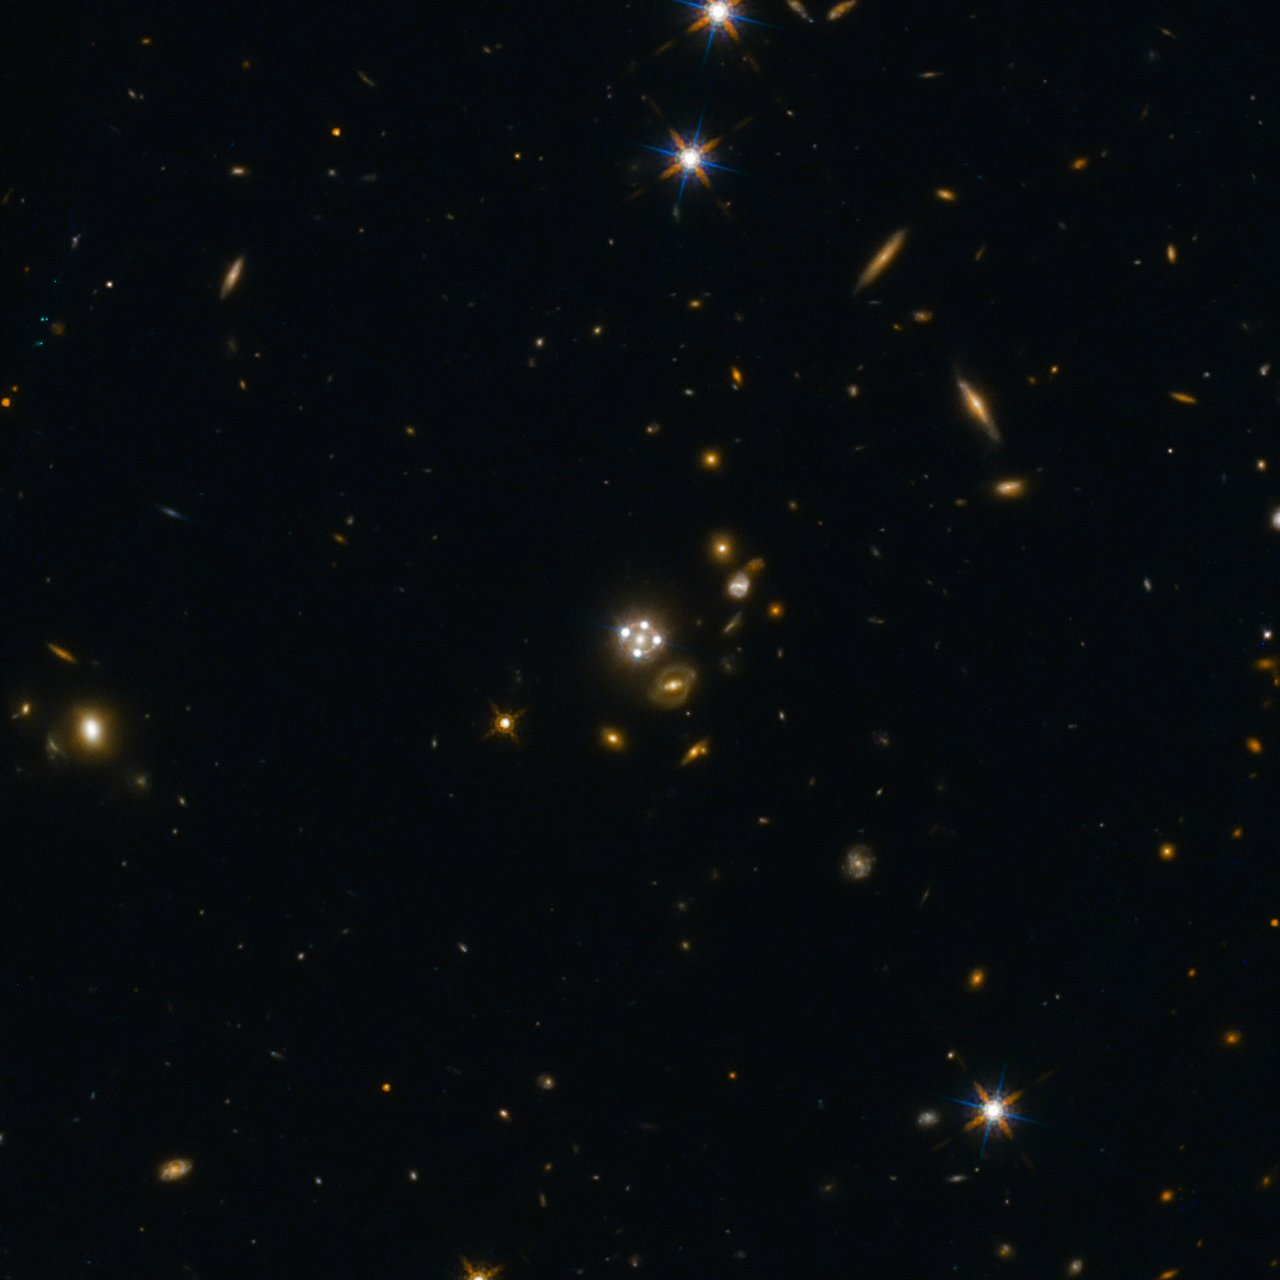 Lensed quasar and its surroundings